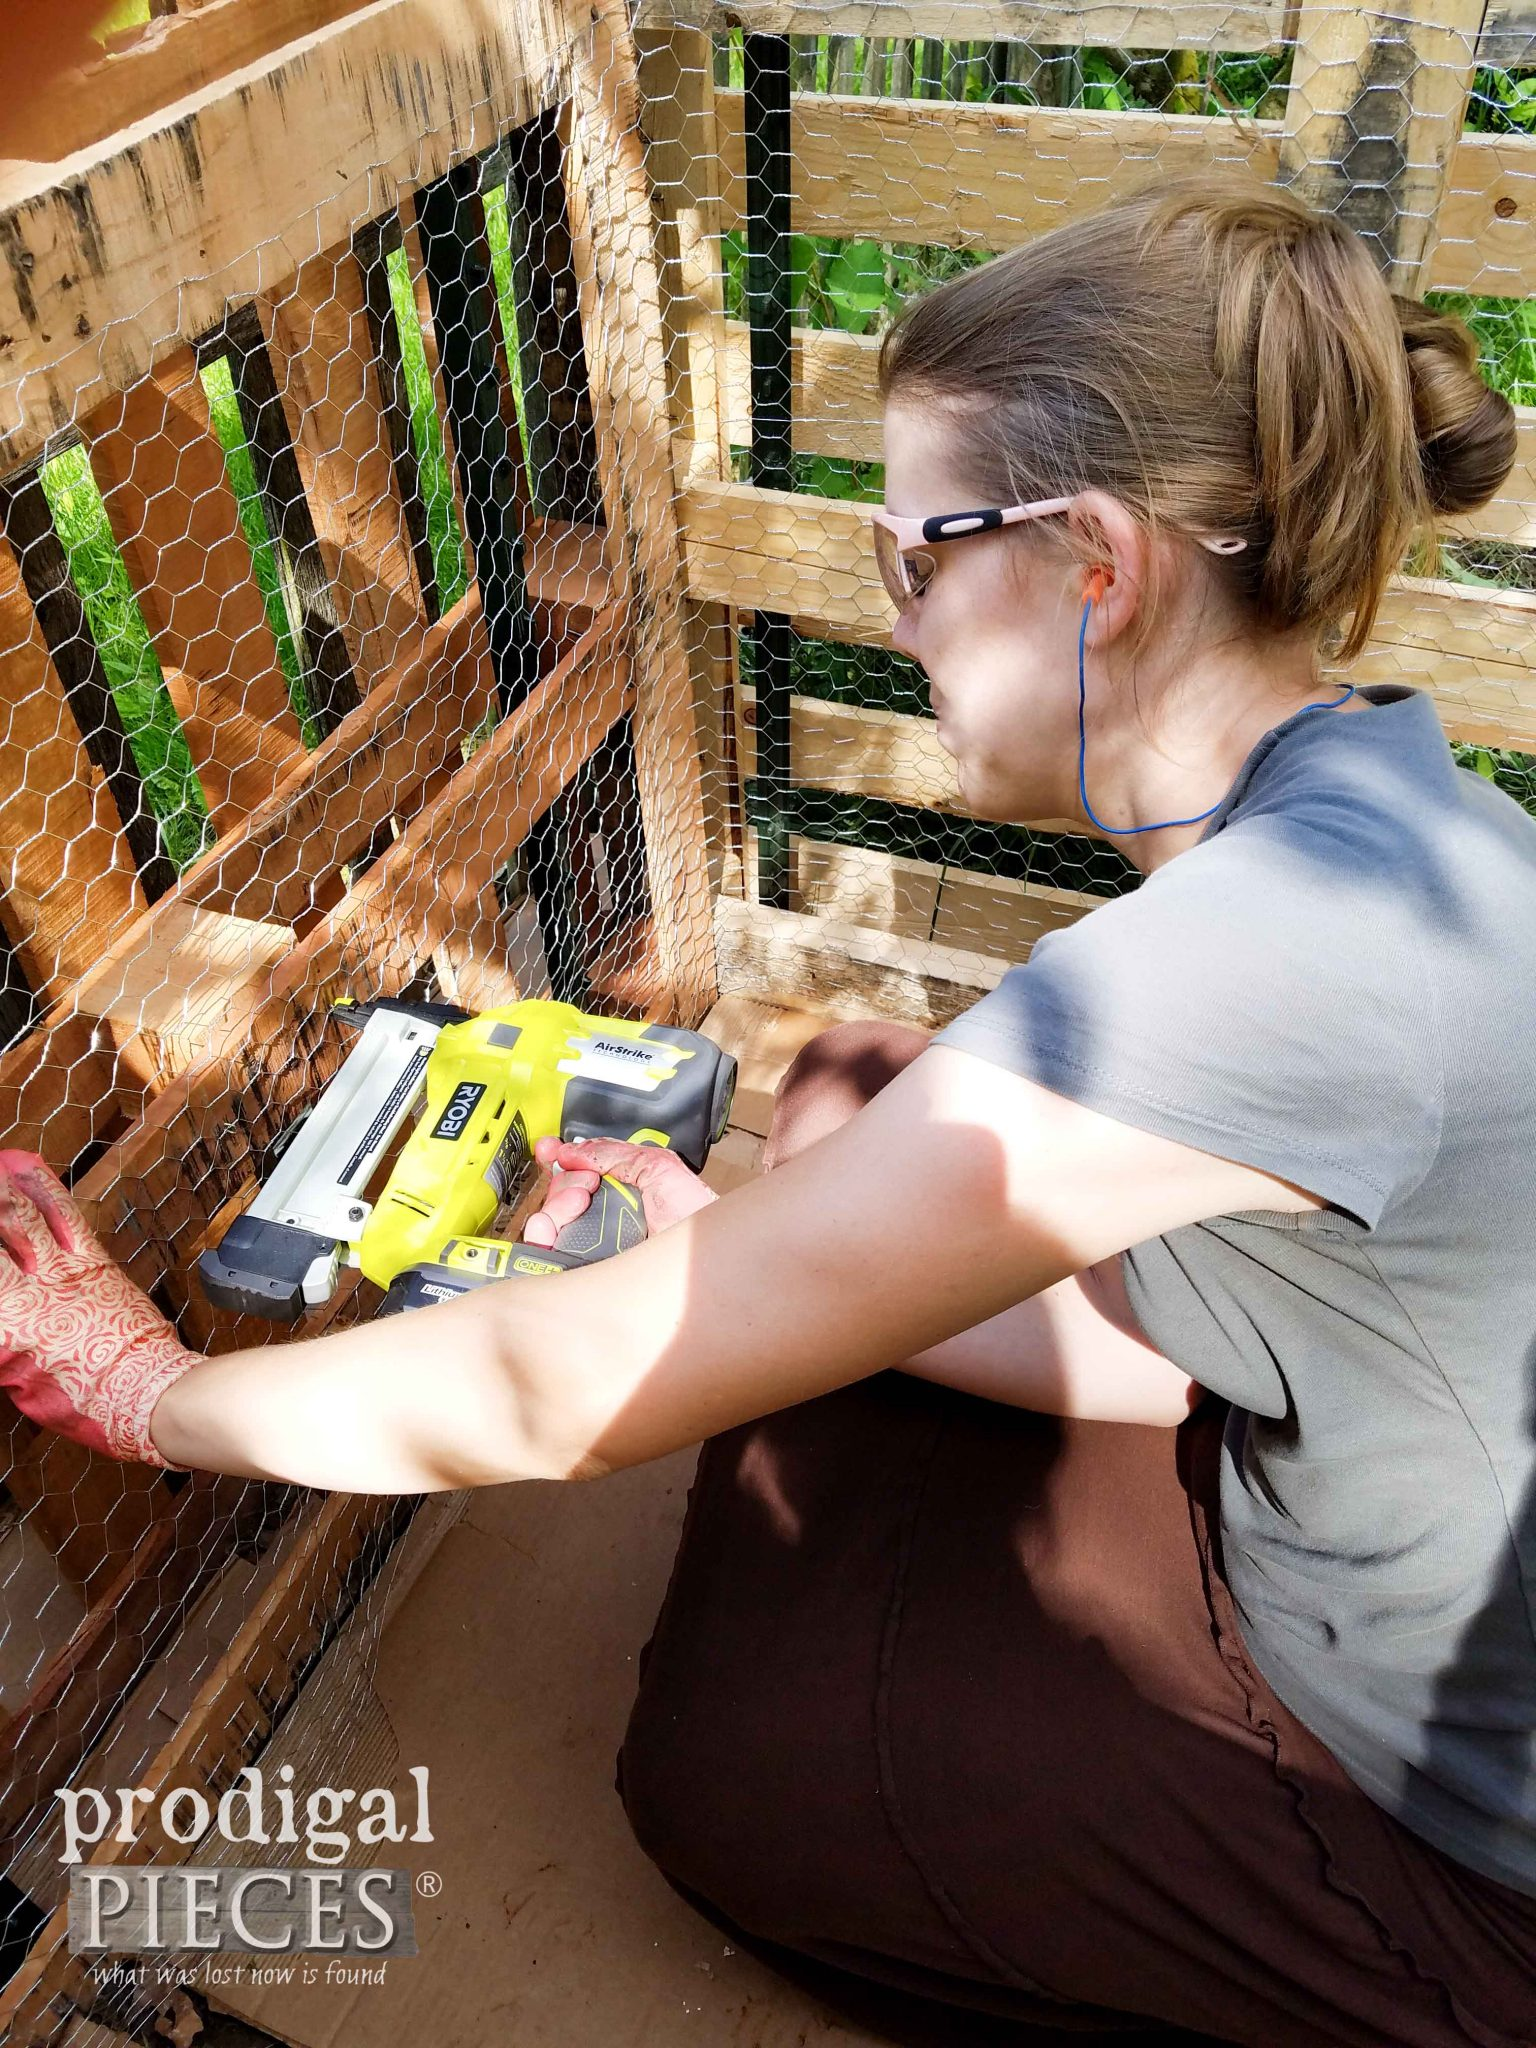 Stapling Chicken Wire with AirStrike Stapler on Compost Bin by Prodigal Pieces | prodigalpieces.com